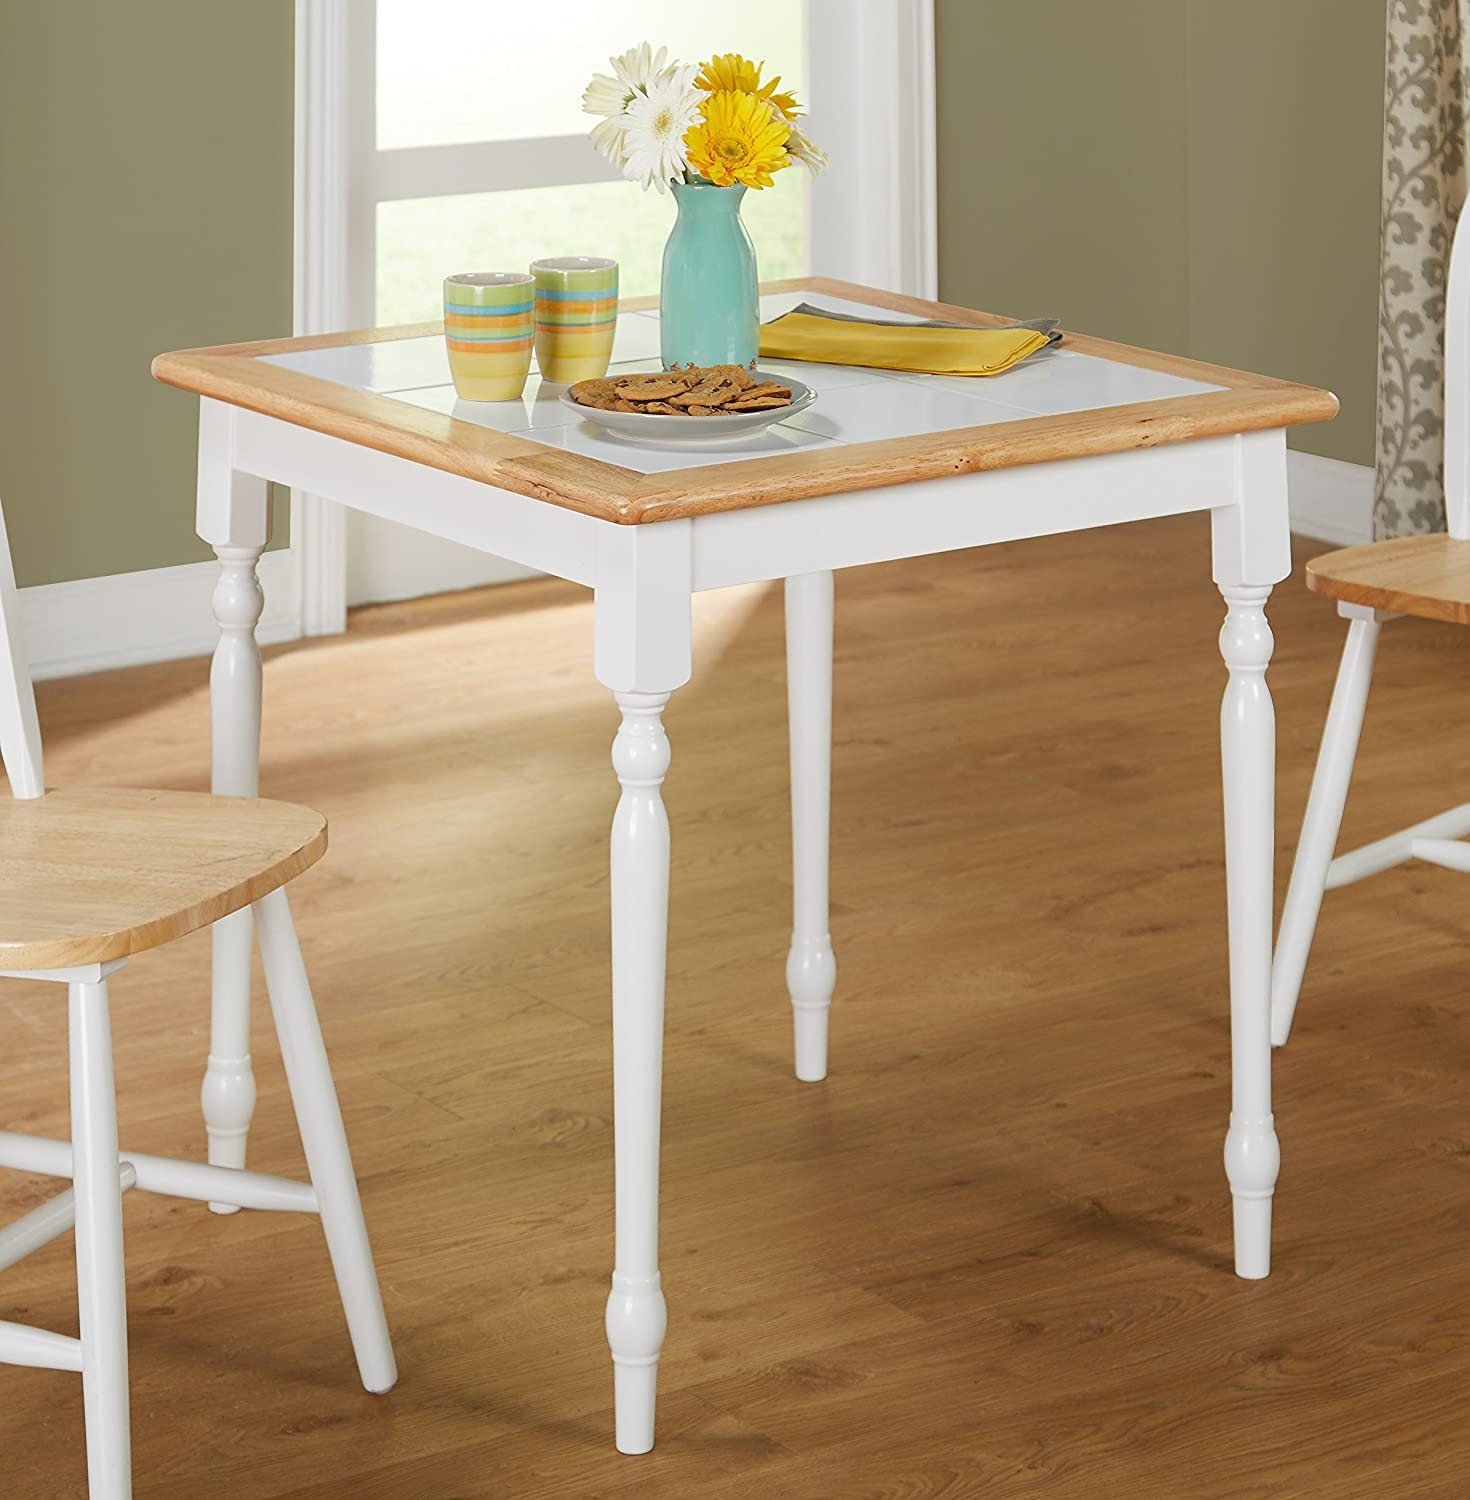 Farmhouse Design Charming Tile Top Dining Table, Reliable Furniture Piece, Comfortably Seating Four People, Constructed from Sturdy and Durable Solid Wood, White/Natural + Expert Guide